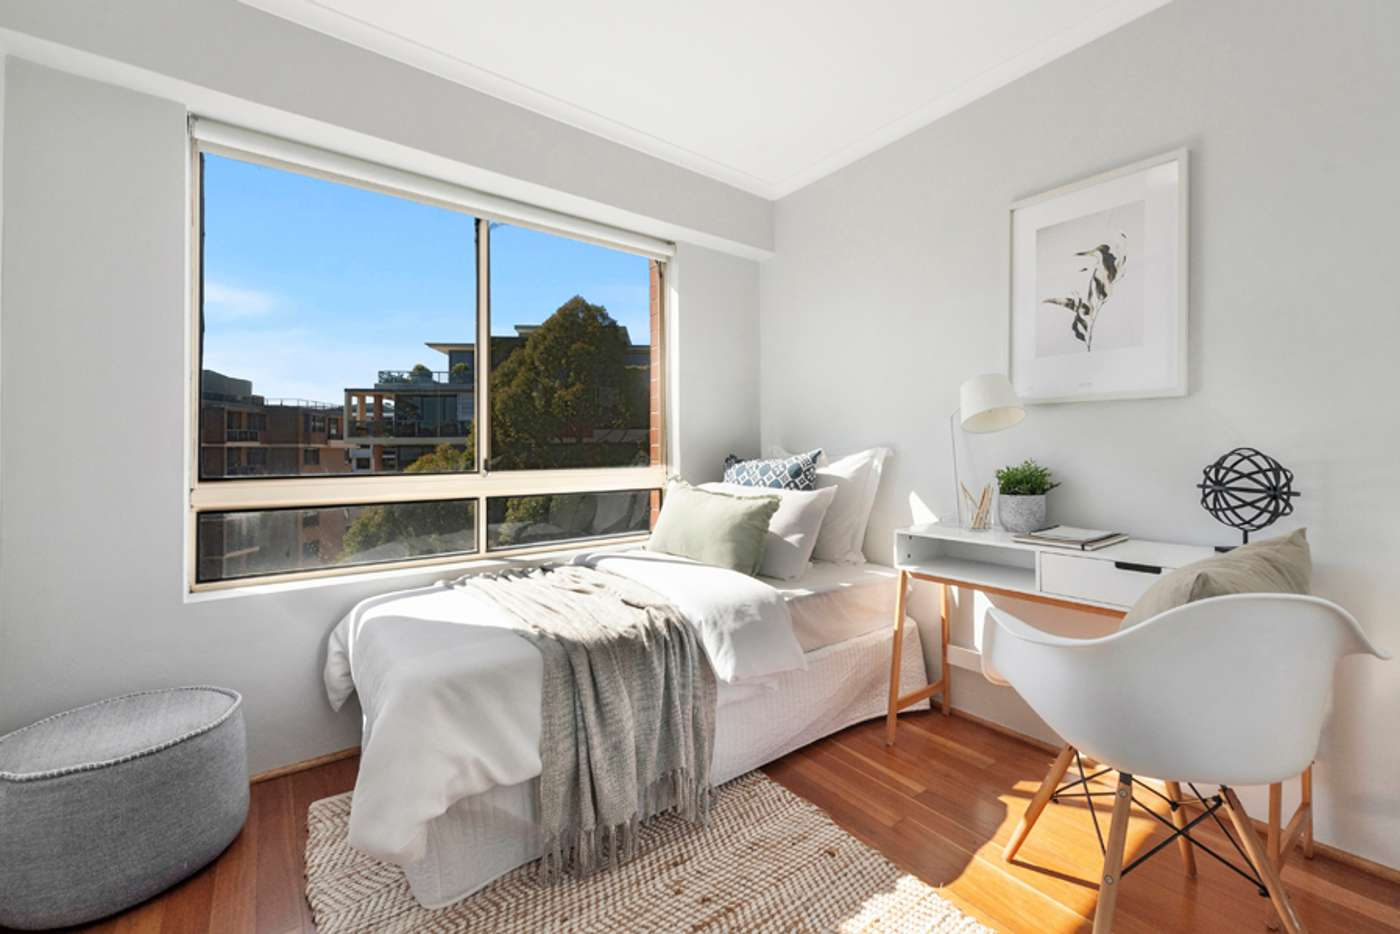 Fifth view of Homely apartment listing, 27/1-3 Thomas Street, Hornsby NSW 2077